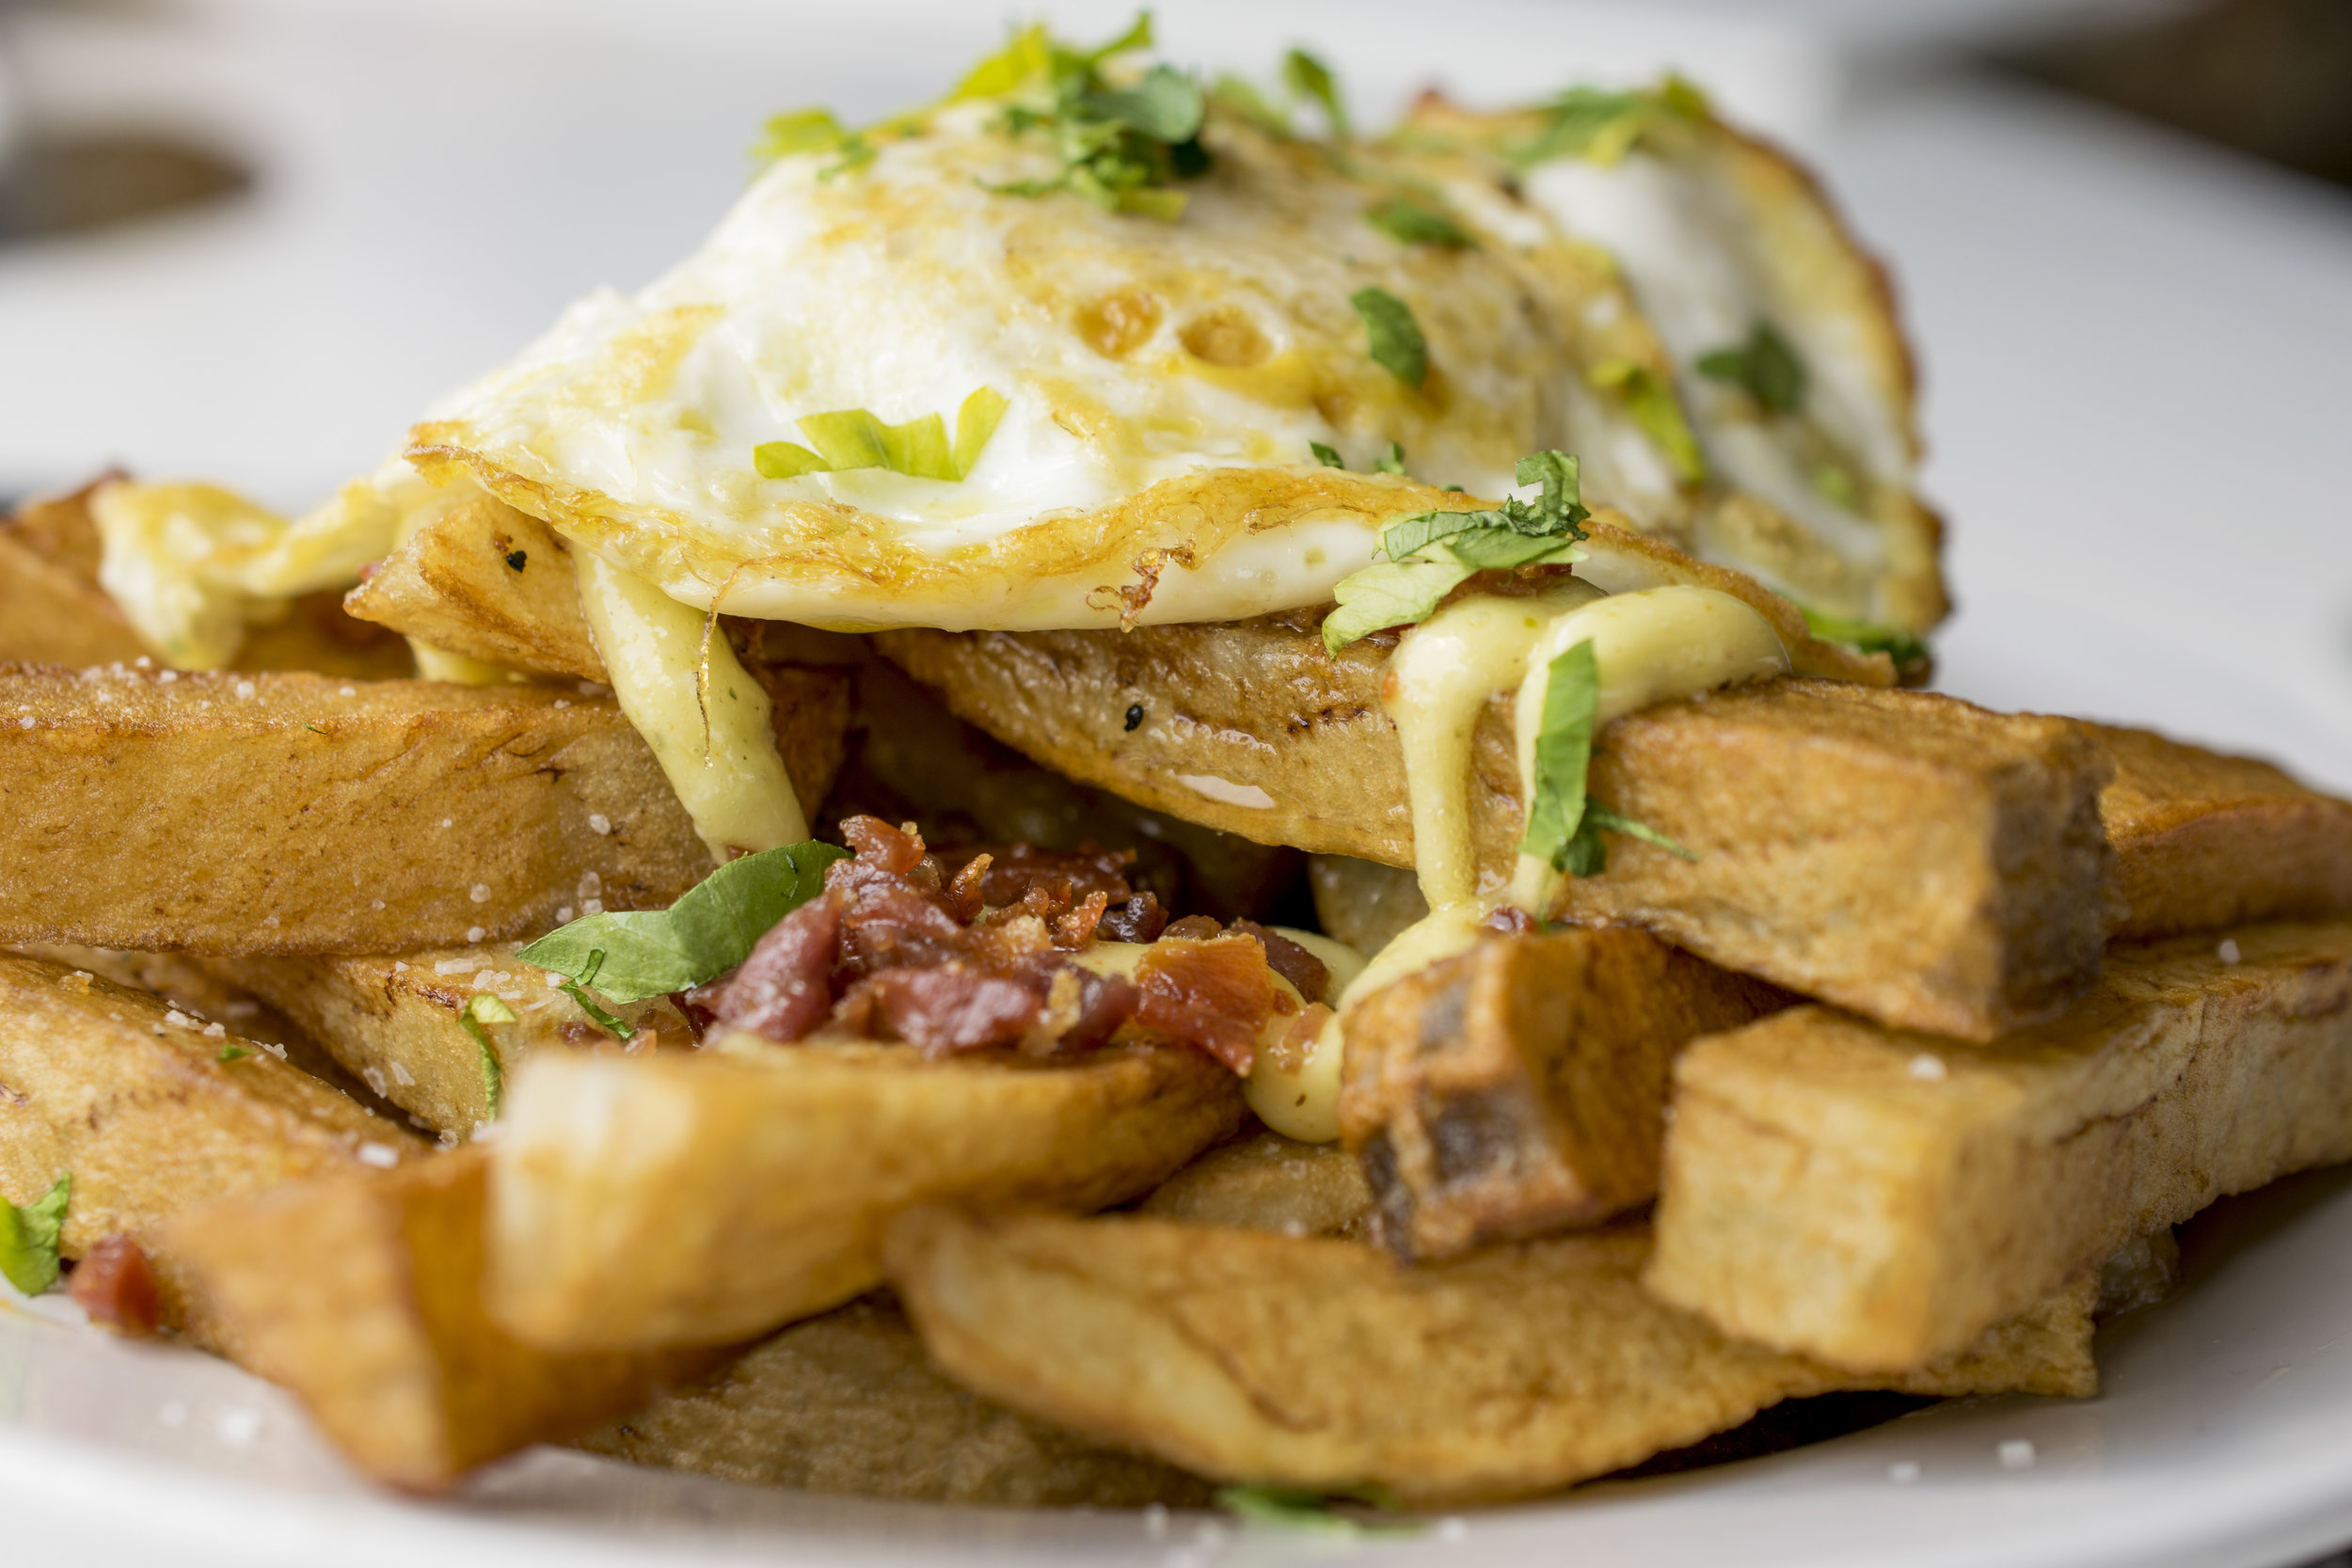 Fried Potatoes Topped with an Egg